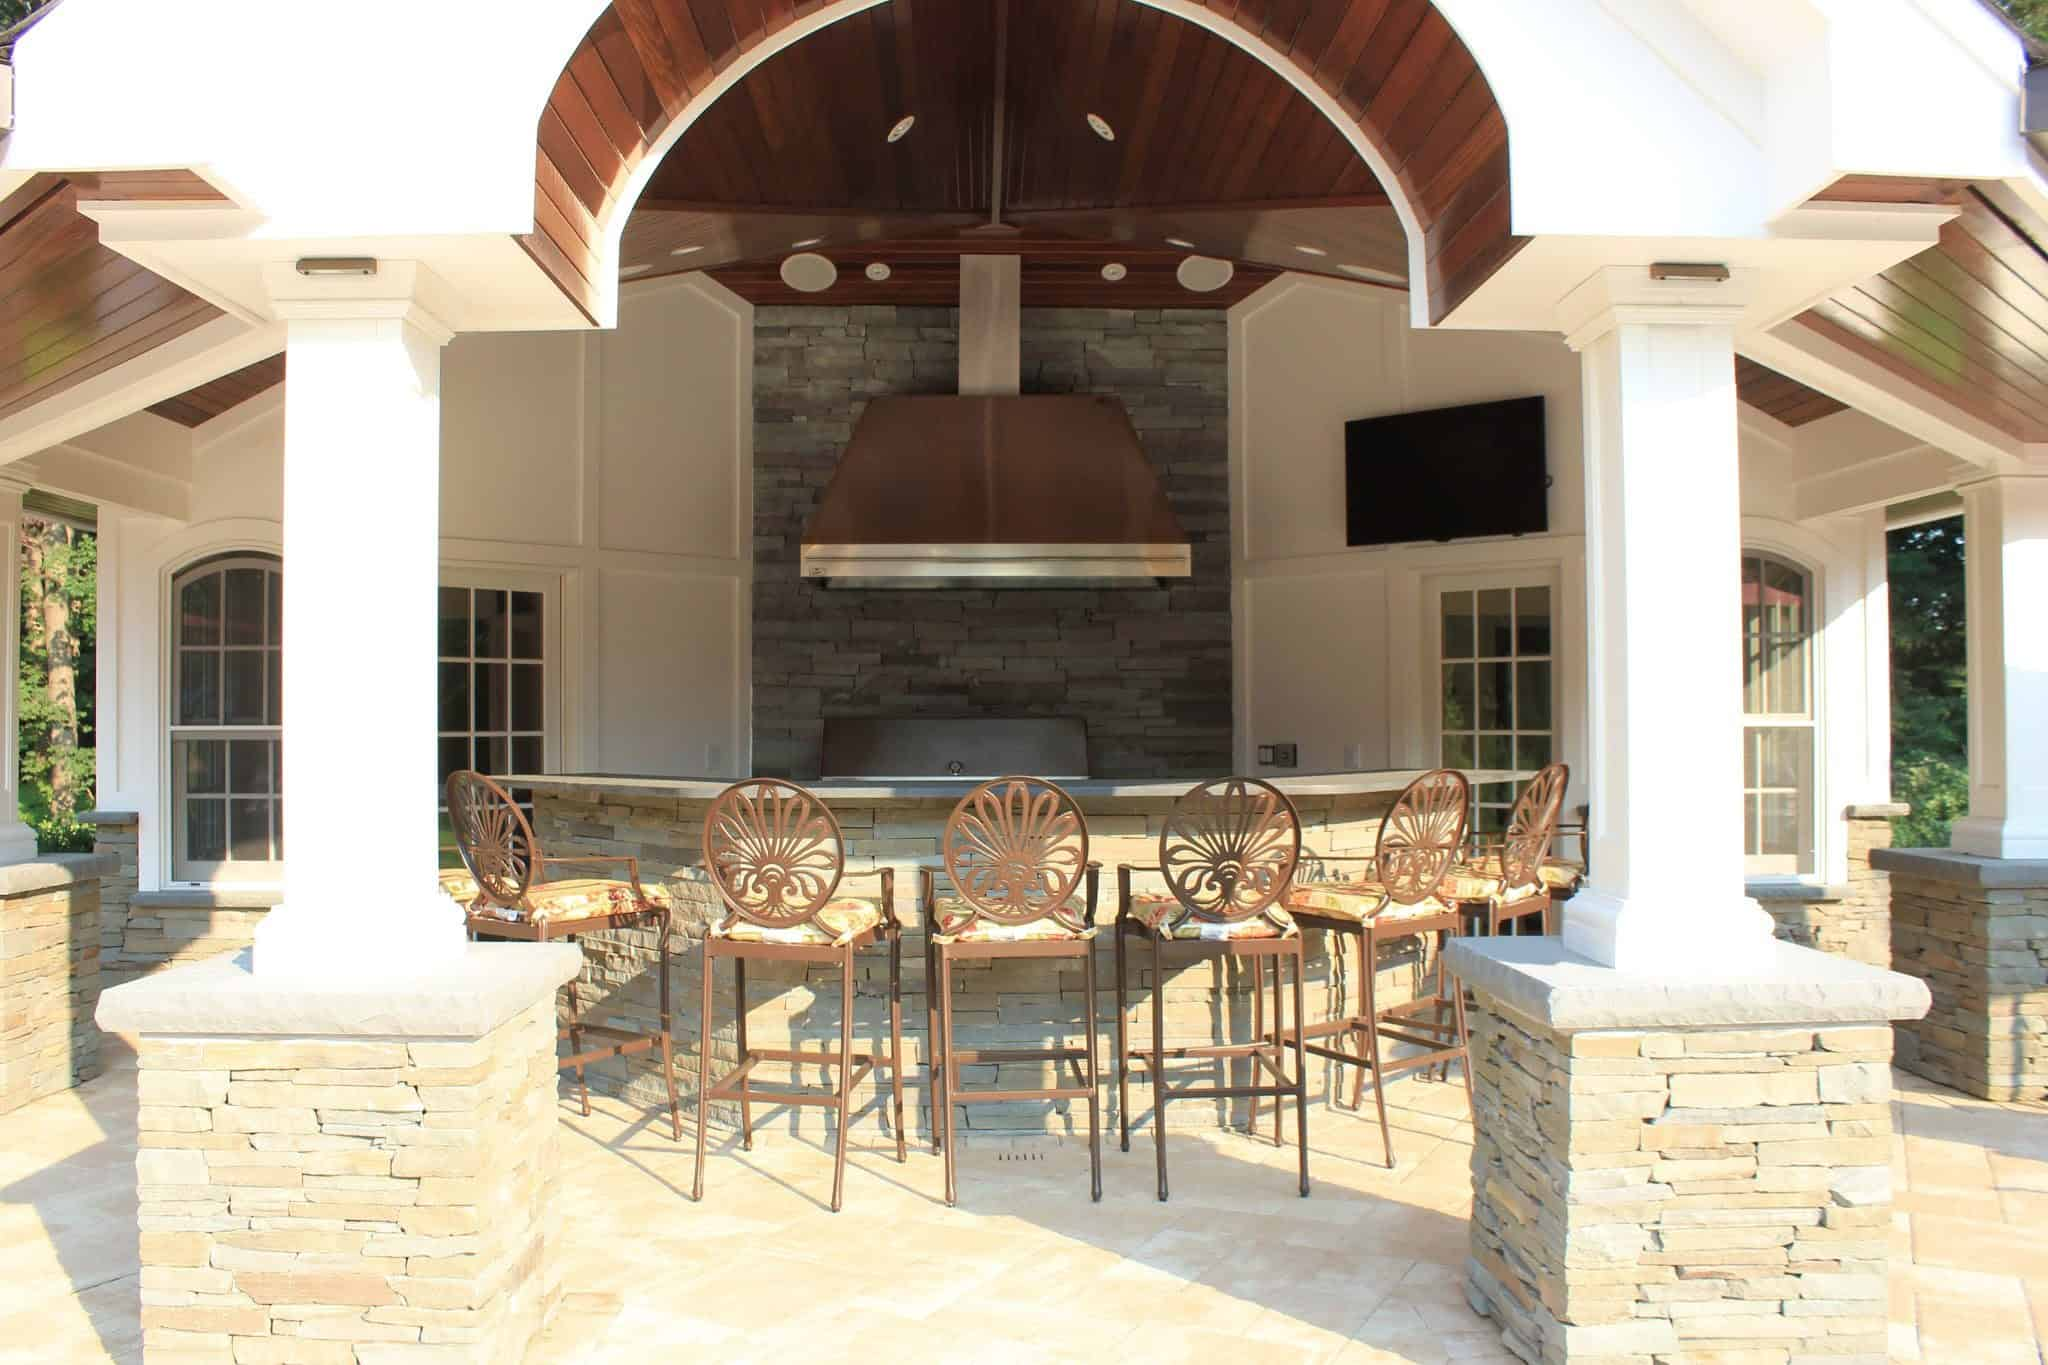 Stacked Bluestone Pillars and Outdoor Kitchen with Rock Faced Bluestone Cap - Old Westbury, Long Island NY